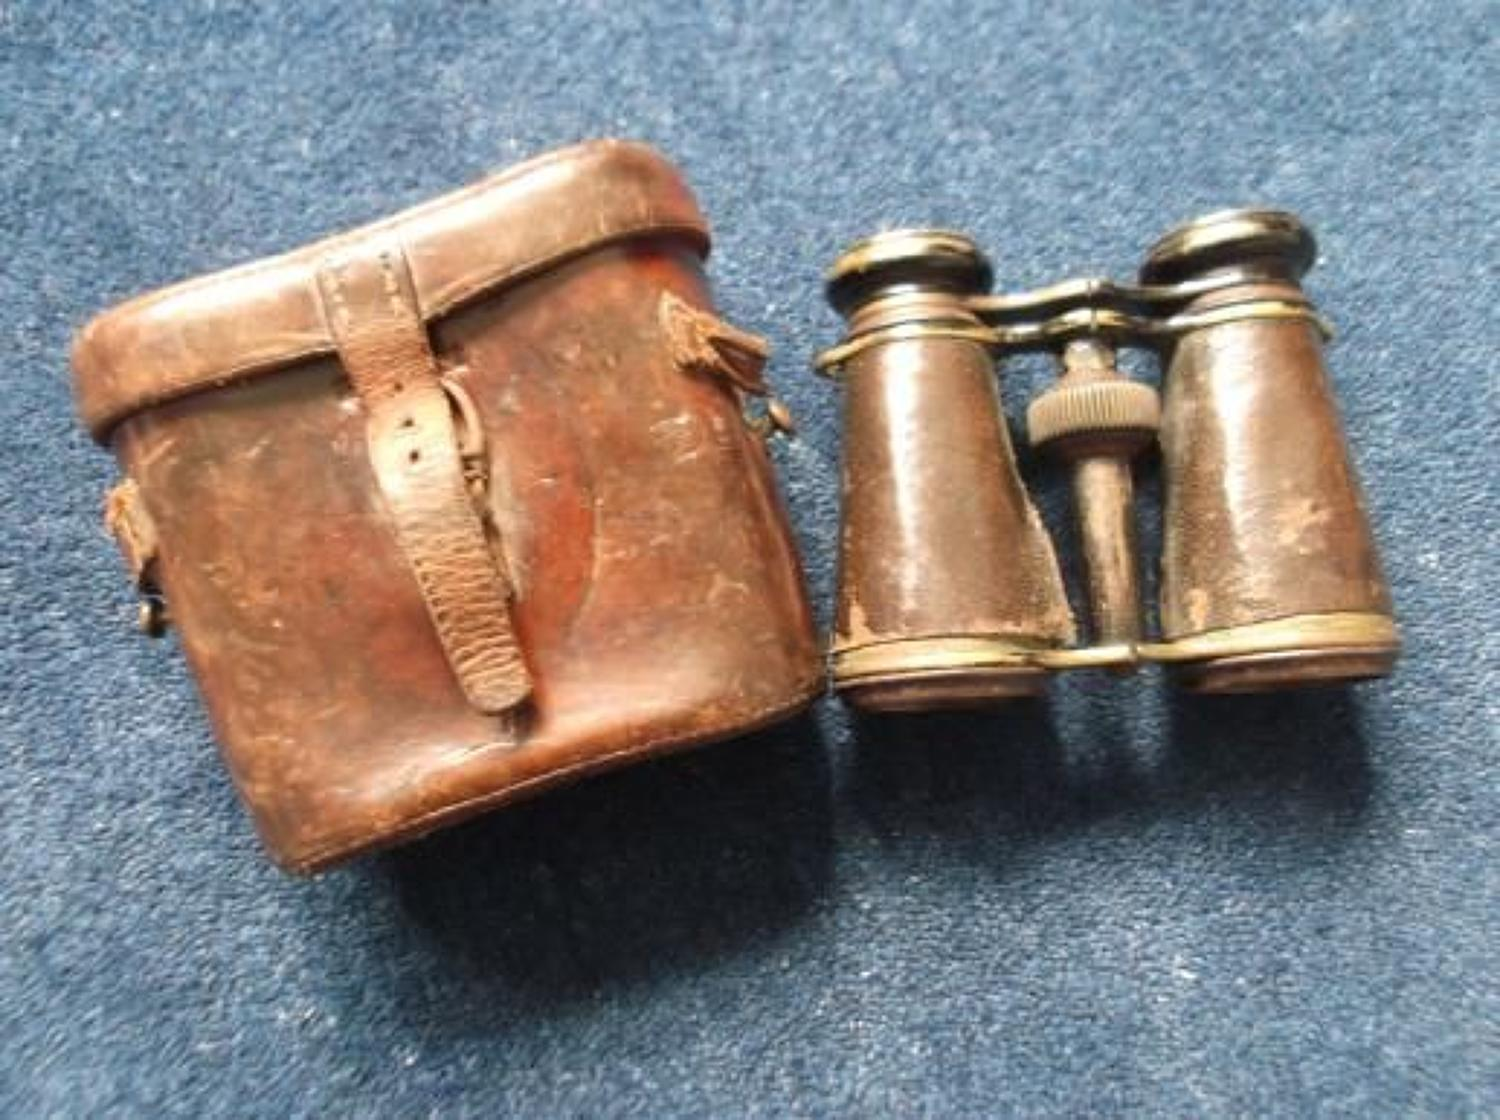 BRITISH ARMY OFFICERS WW1 BINOCULARS FIELD GLASSES